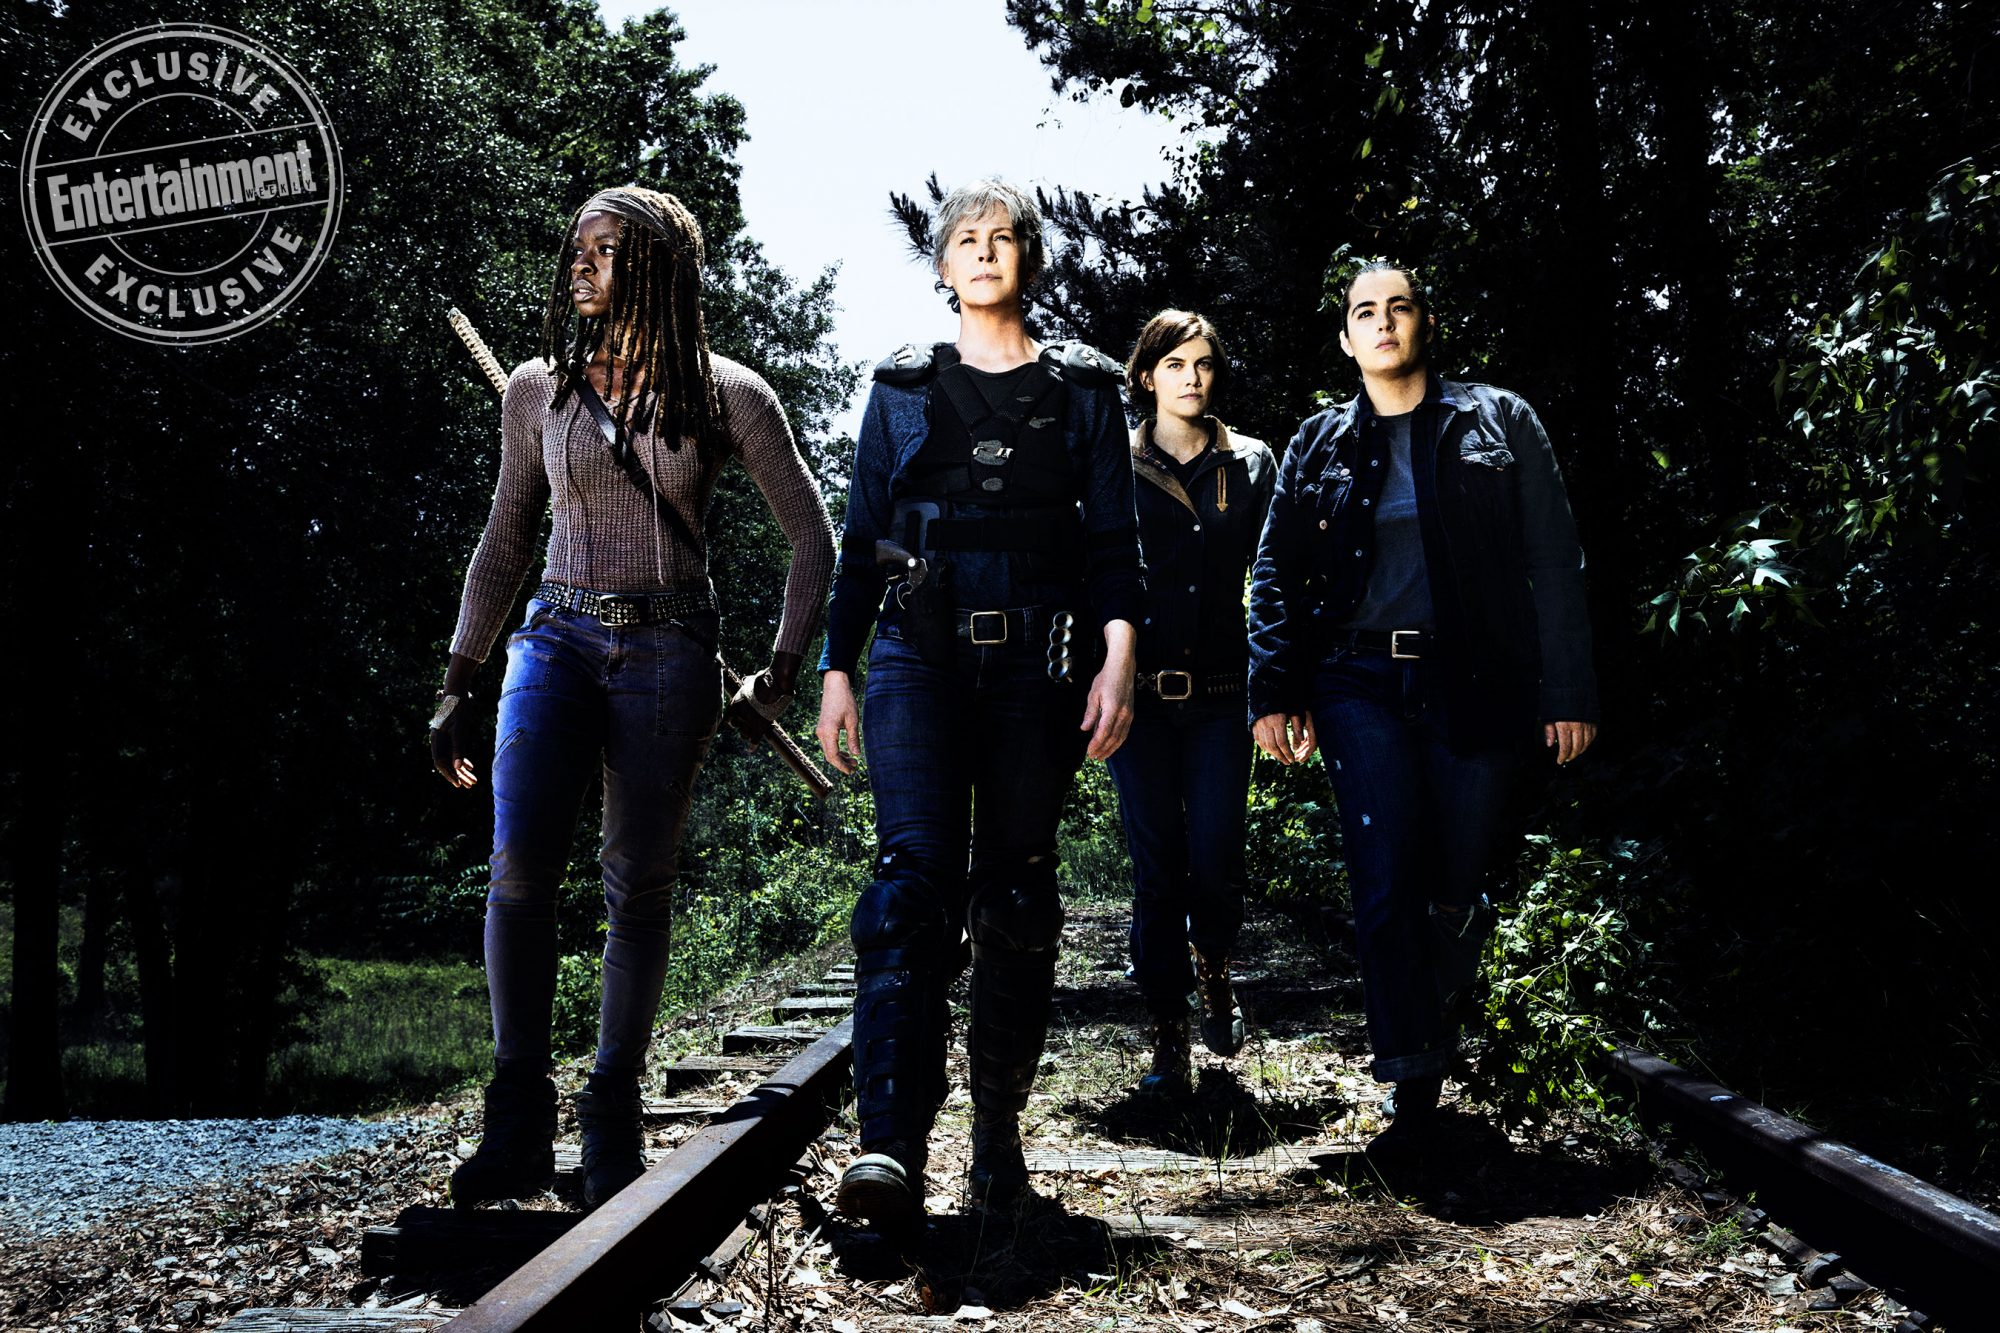 Danai-Gurira-as-Michonne,-Melissa-McBride-as-Carol-Peletier,-Lauren-Cohan-as-Maggie-Greene,-Alanna-Masterson-as-Tara-Chambler --The-Walking-Dead-_-Season-8,-Gallery---Photo-Credit-Alan-